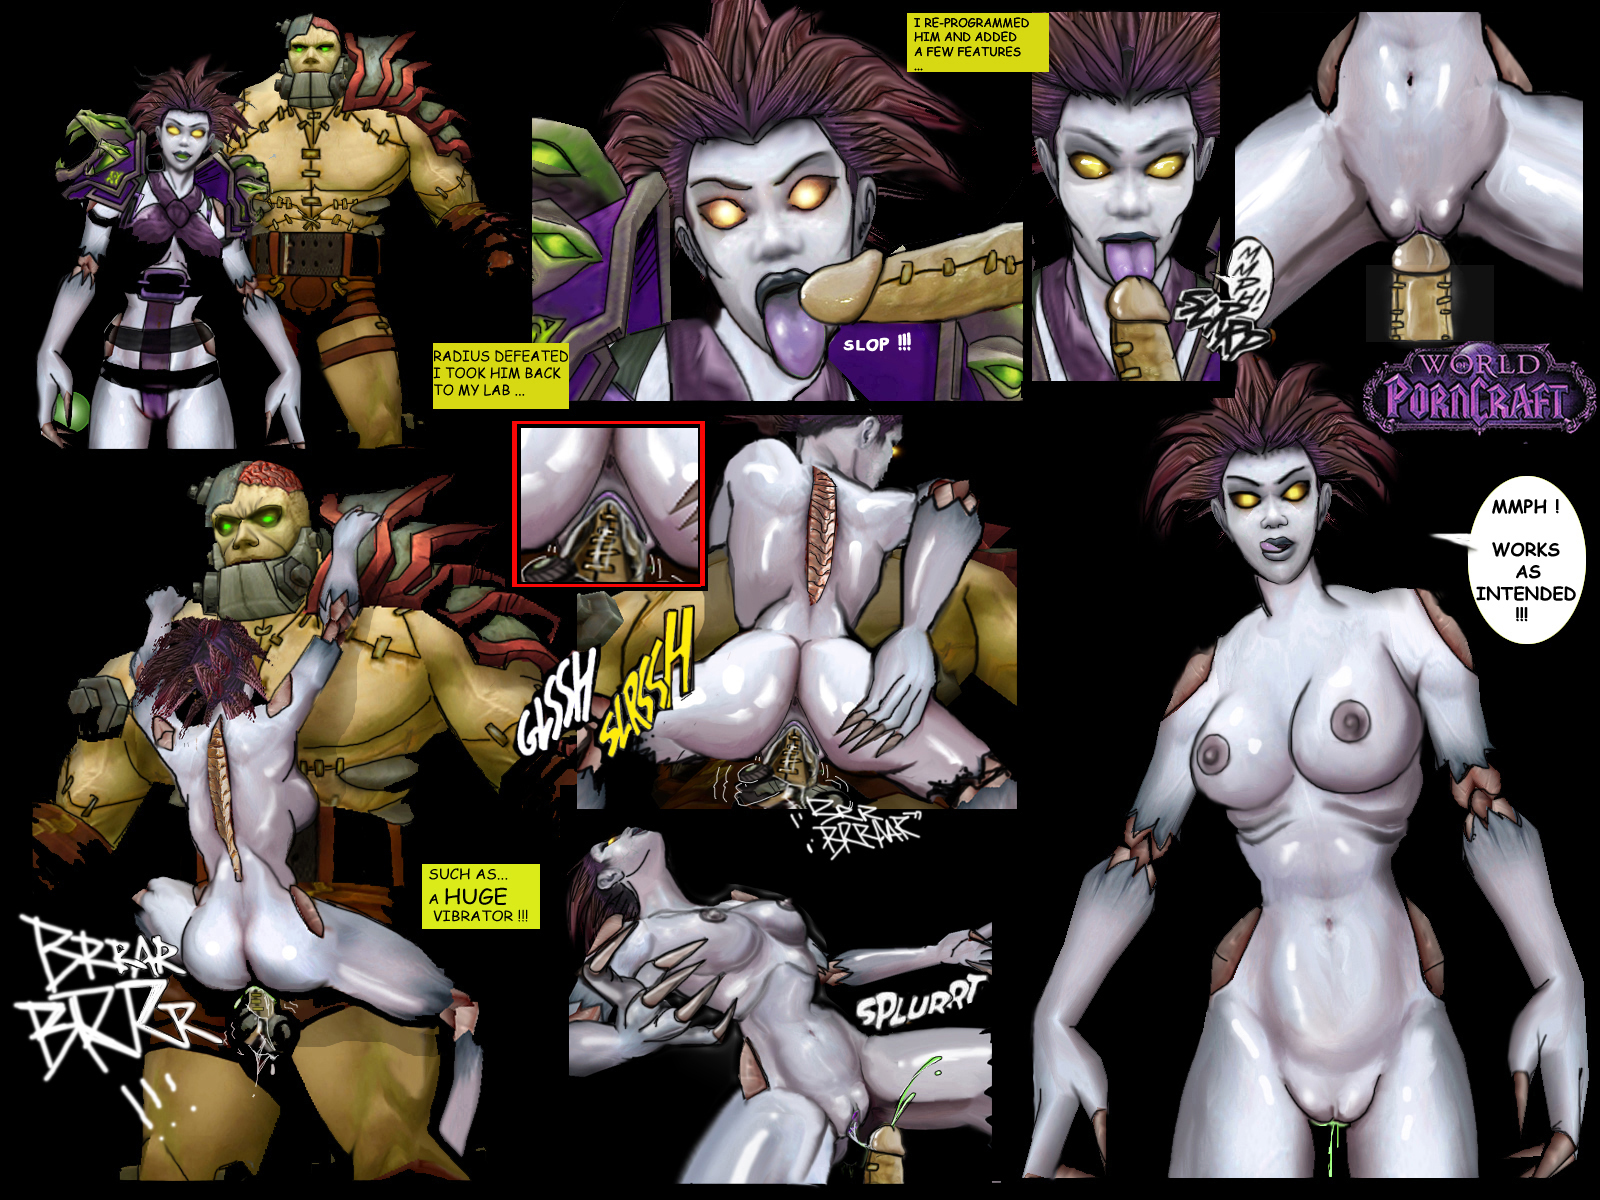 Undead female porncraft erotic gallery